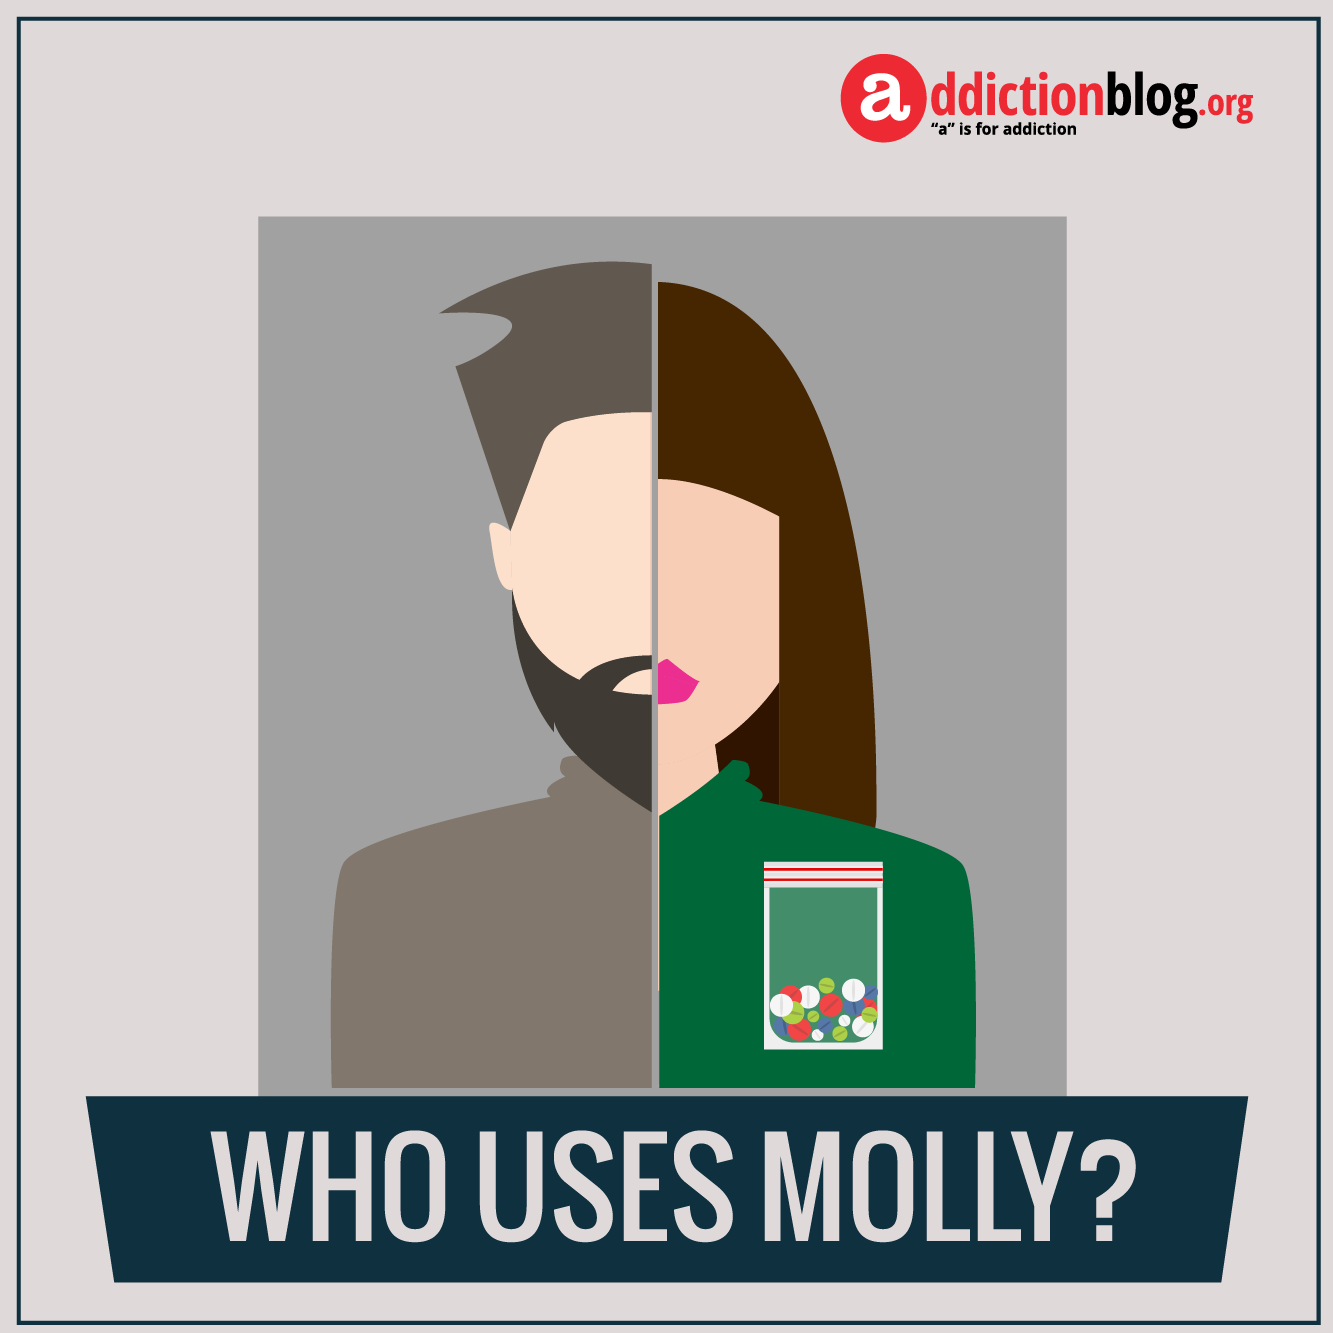 The face of ecstasy addiction: Who uses Molly/MDMA? (INFOGRAPHIC)